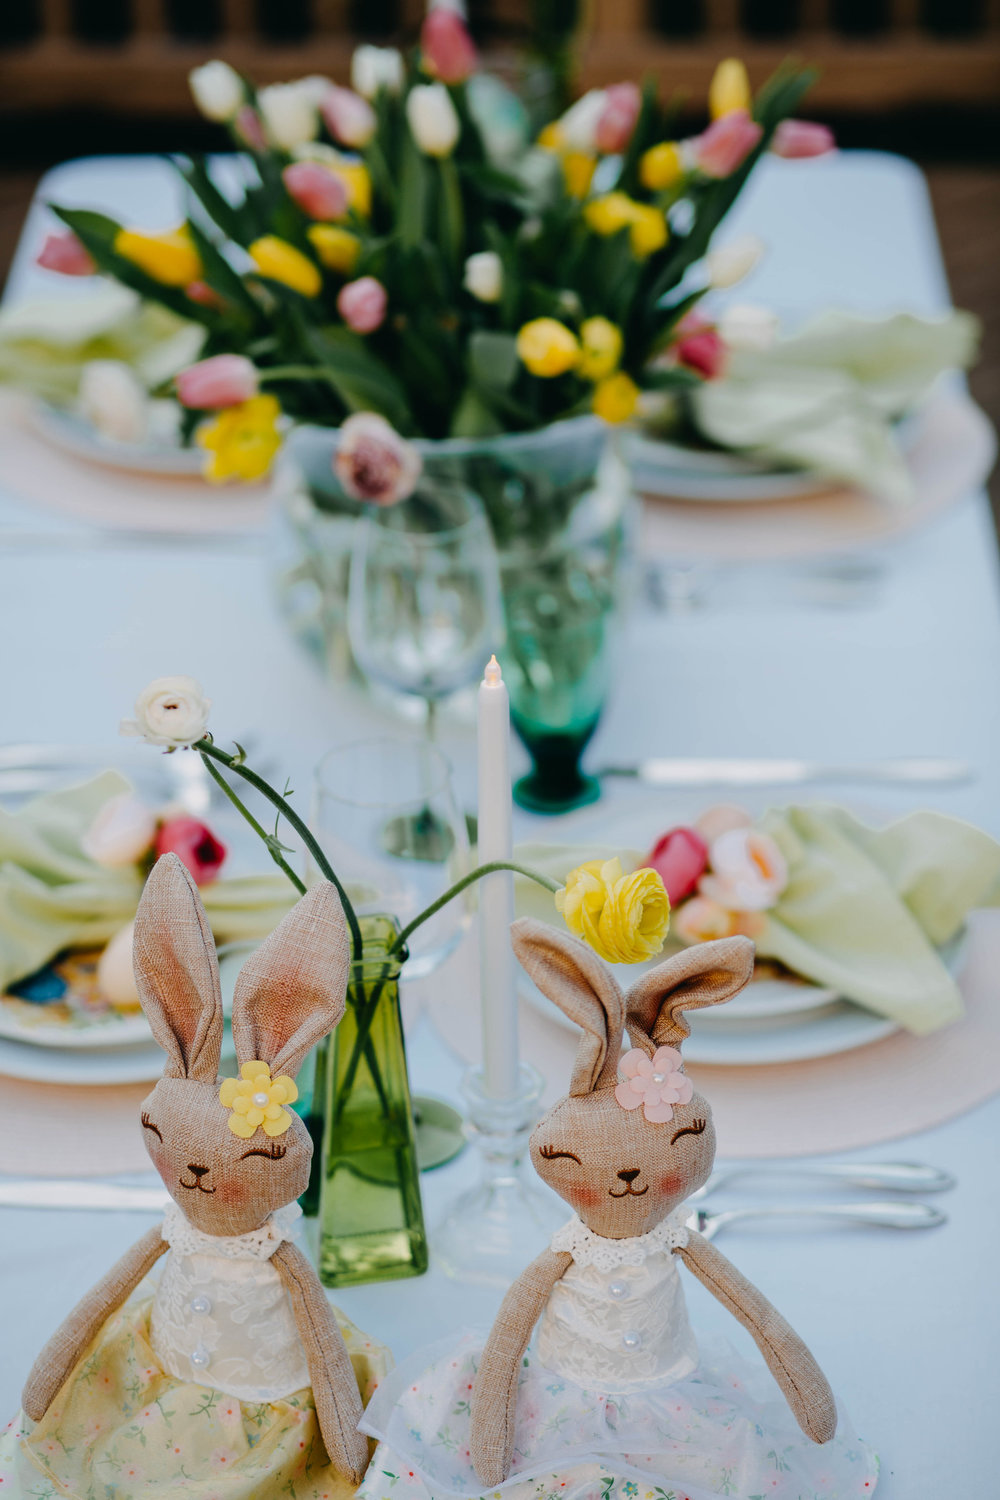 Whimsical Easter Tablescape Decor - Always Creating Studio